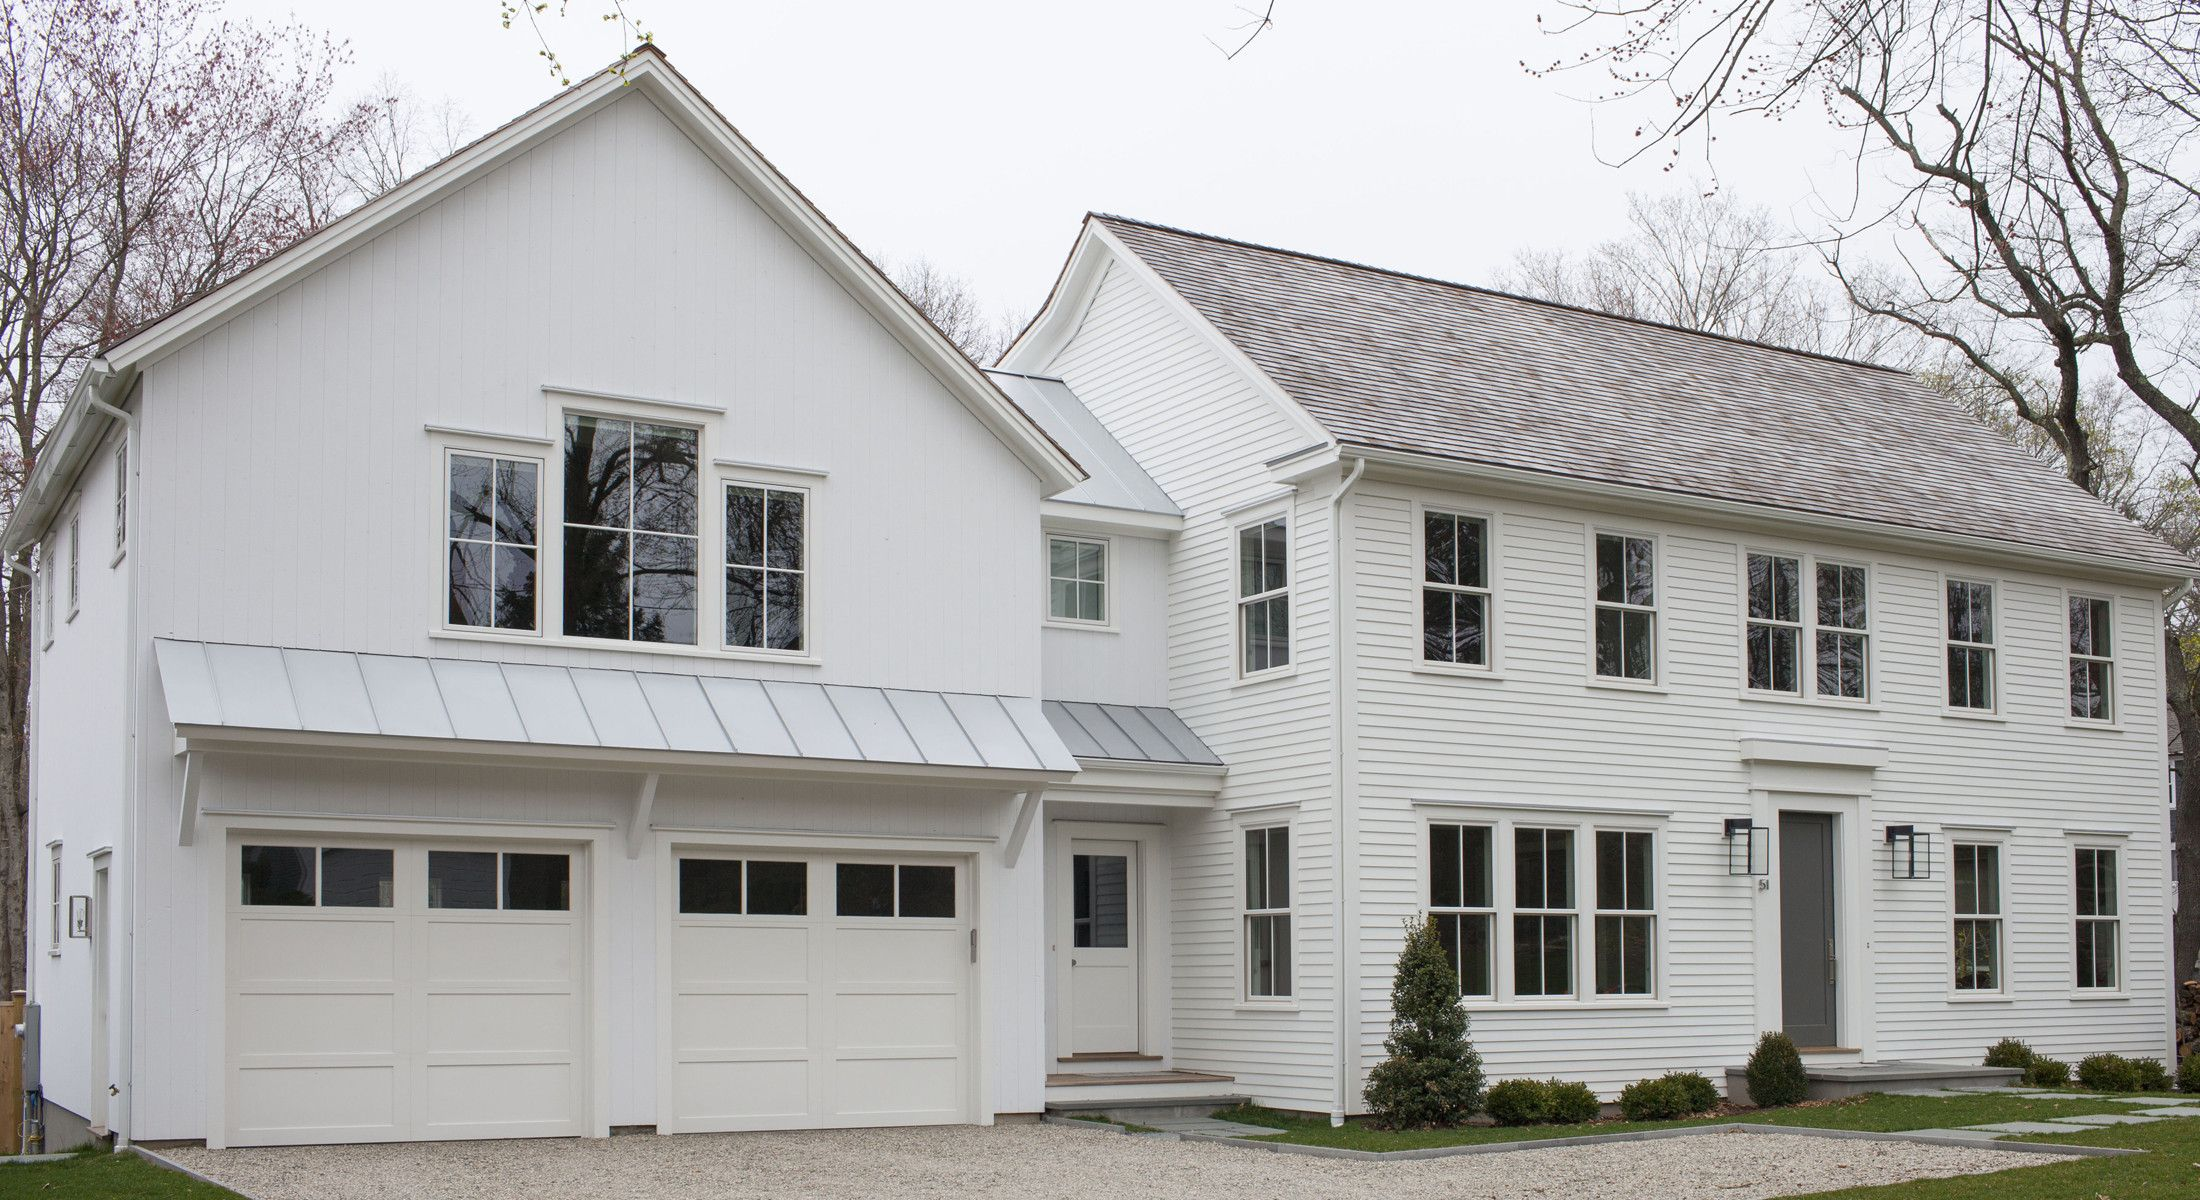 Modern Farmhouse Exterior With Columnless Roof Awning